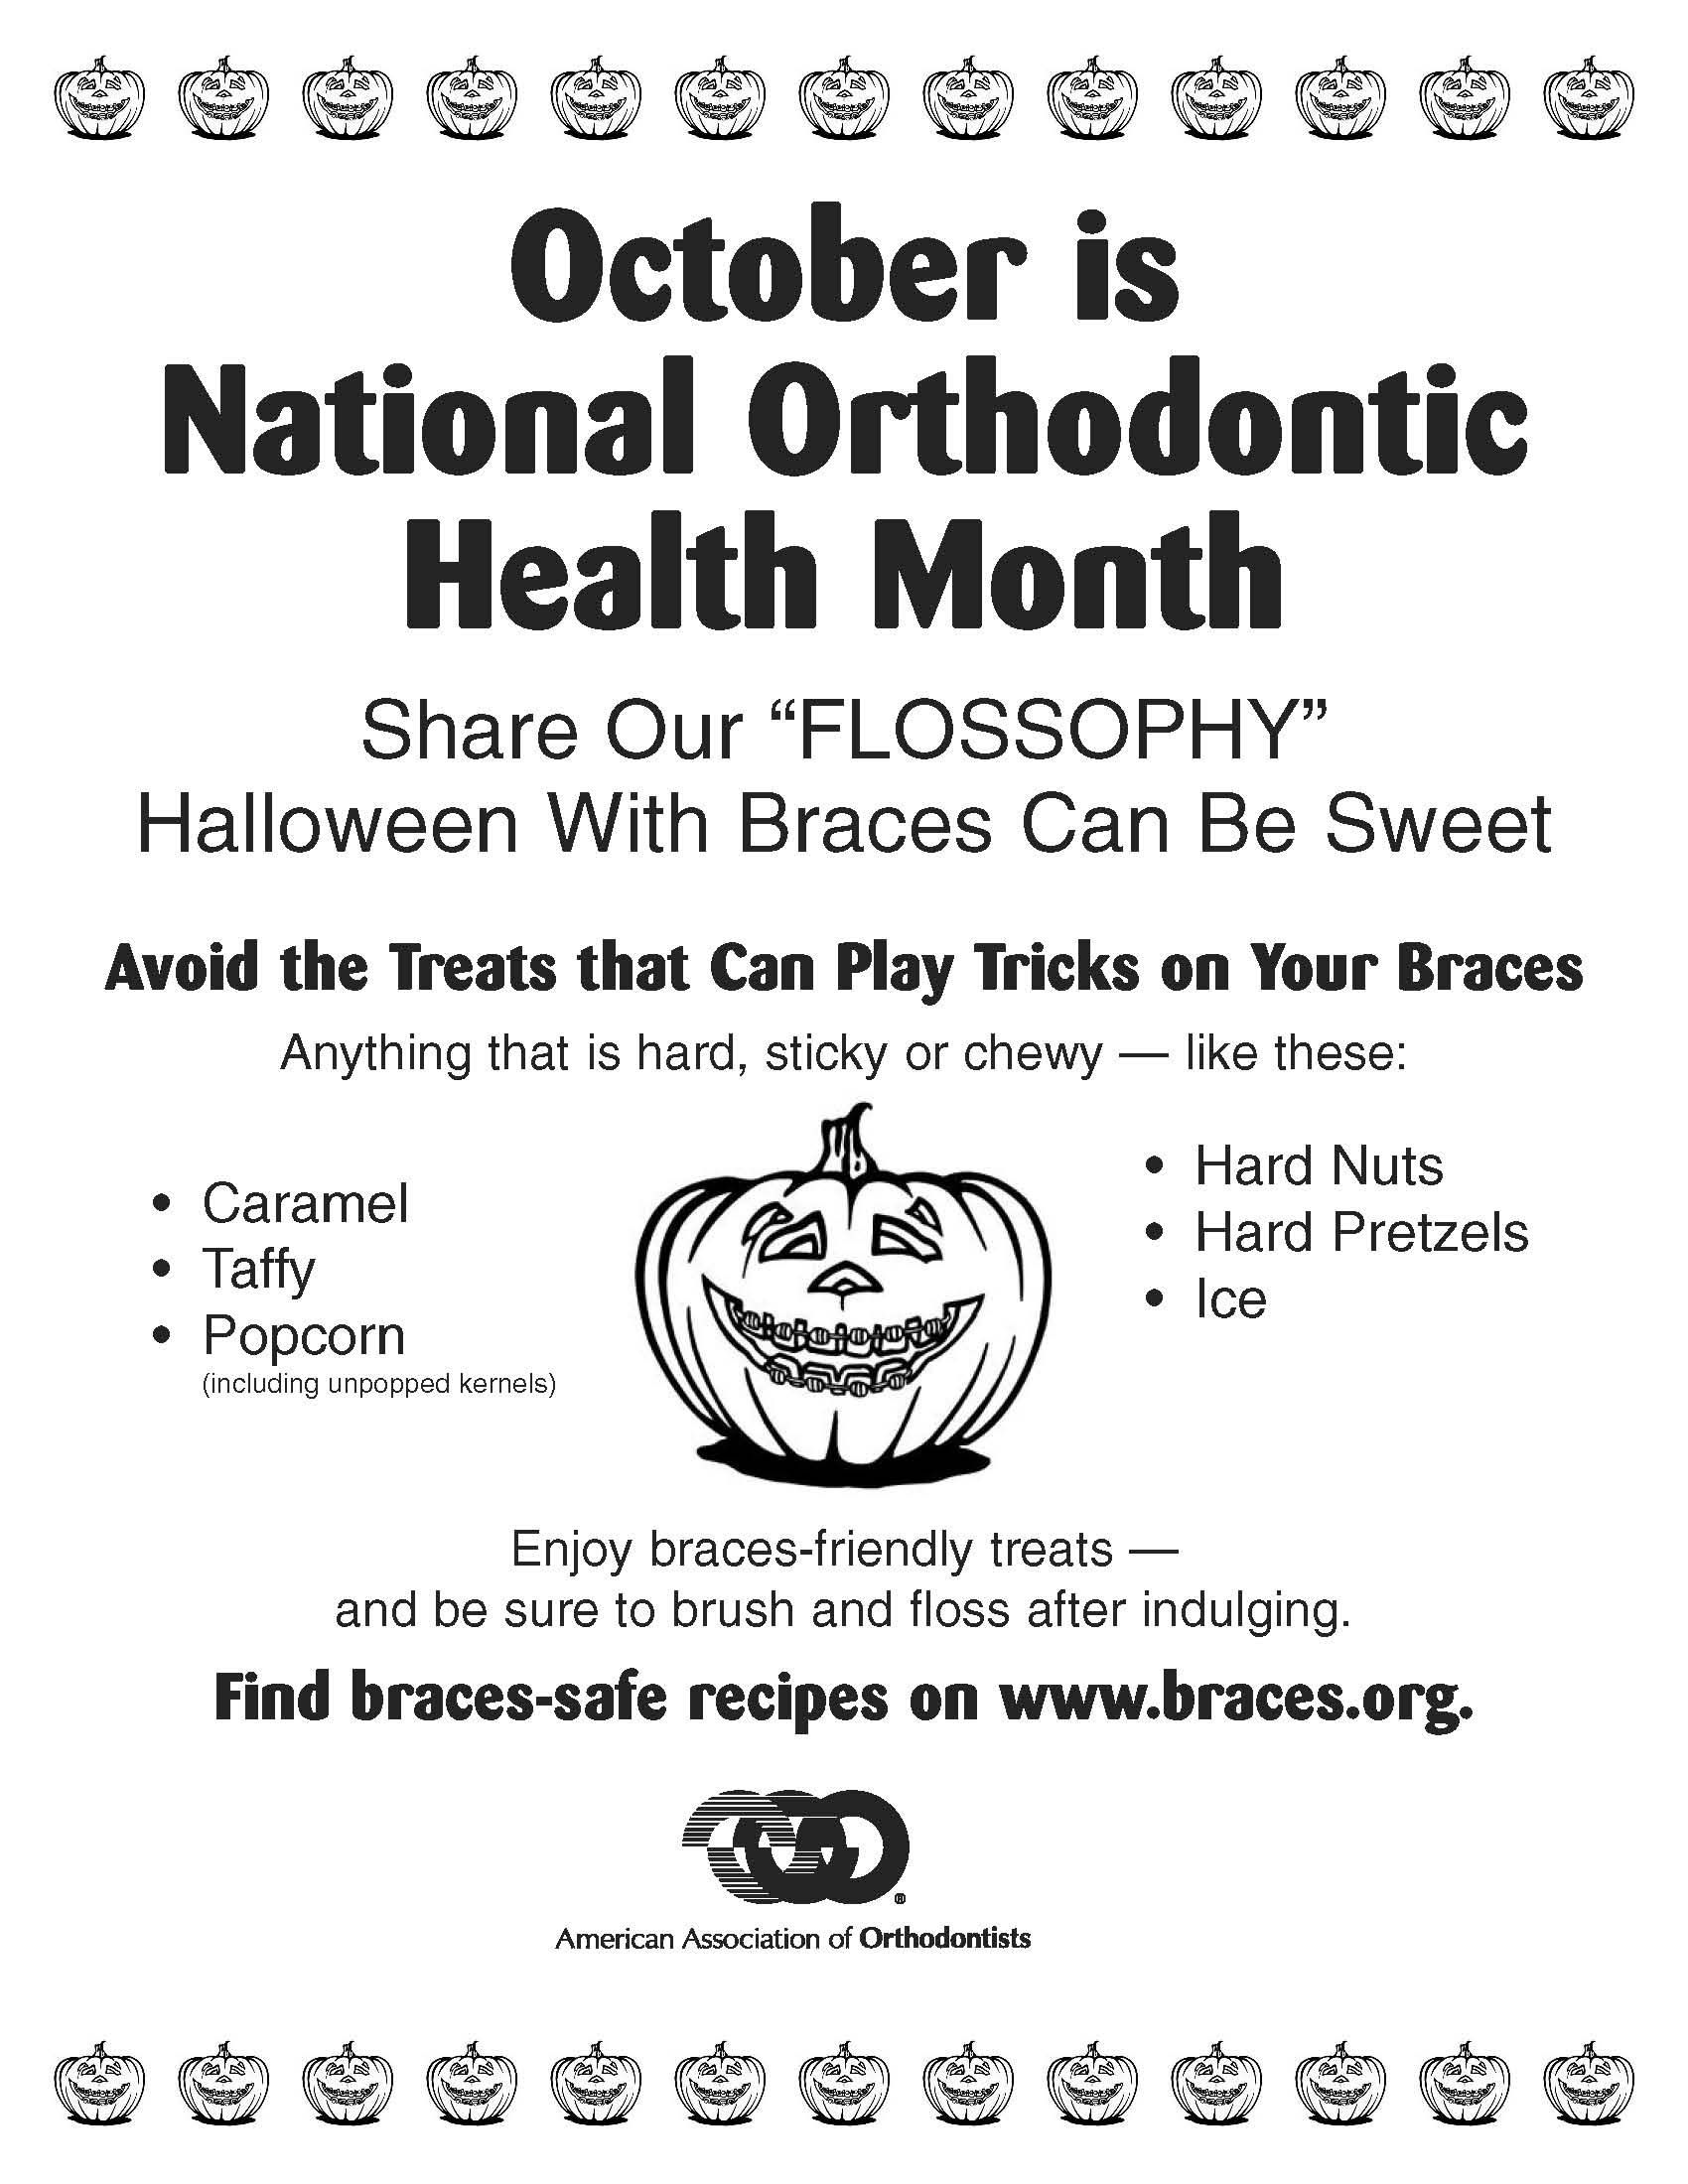 Halloween With Braces Can Be Sweet Just Watch What You Eat